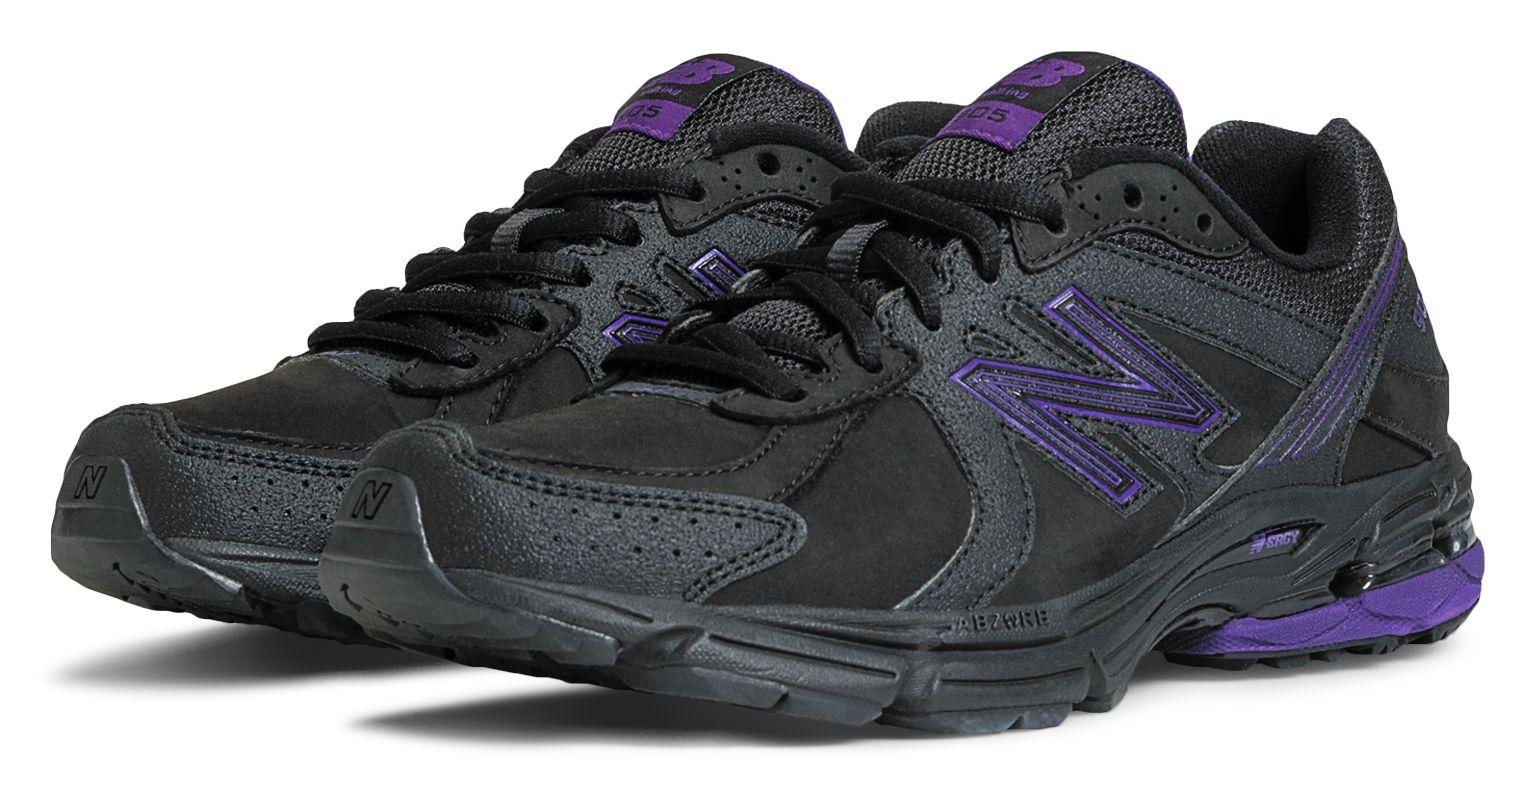 New Balance 905 Shoes in Black